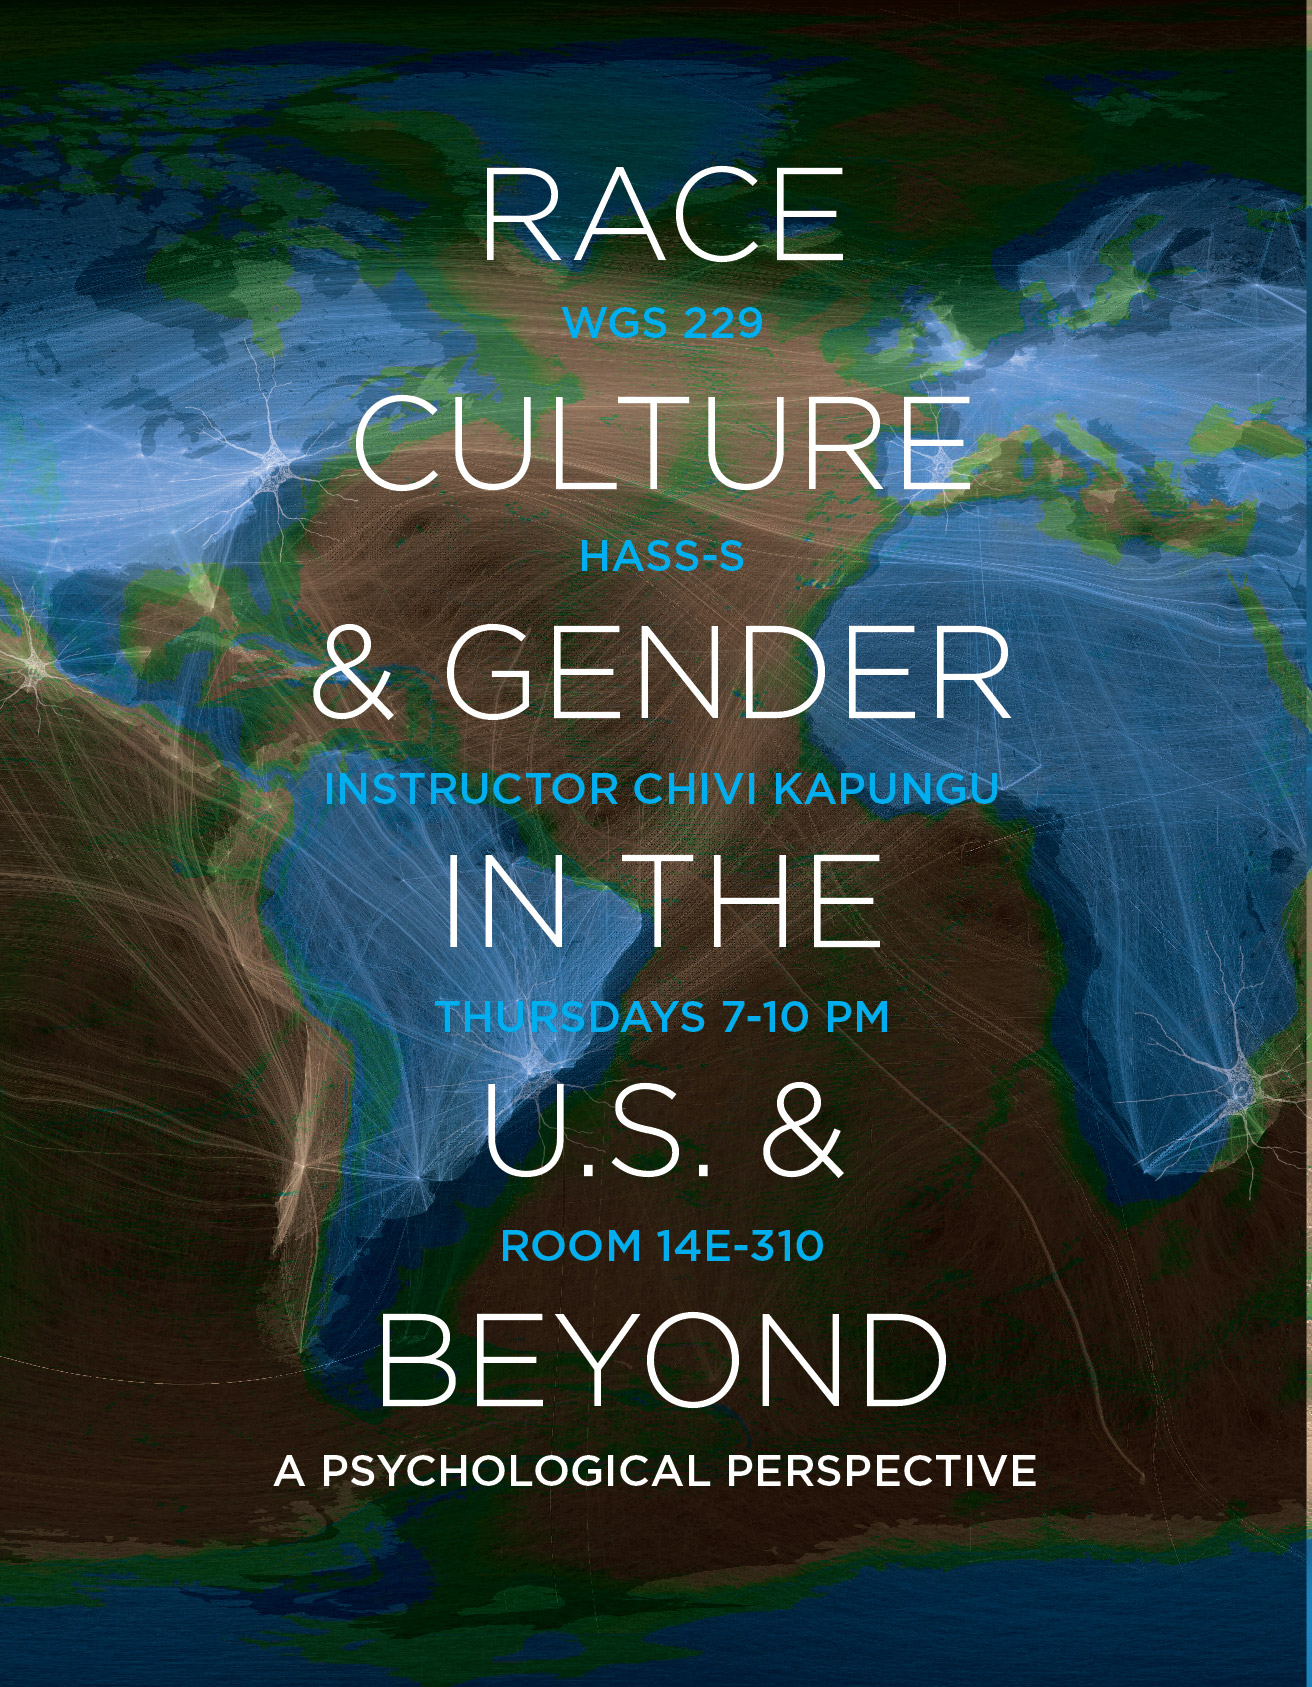 introduction to womens and gender studies Spring 2014 wmgs 102-03 call #: 16201 introduction to women's and gender studies instructor: dr shannon harry walsh e-mail: harrys@mailmontclairedu this is the fastest and best way to reach me.